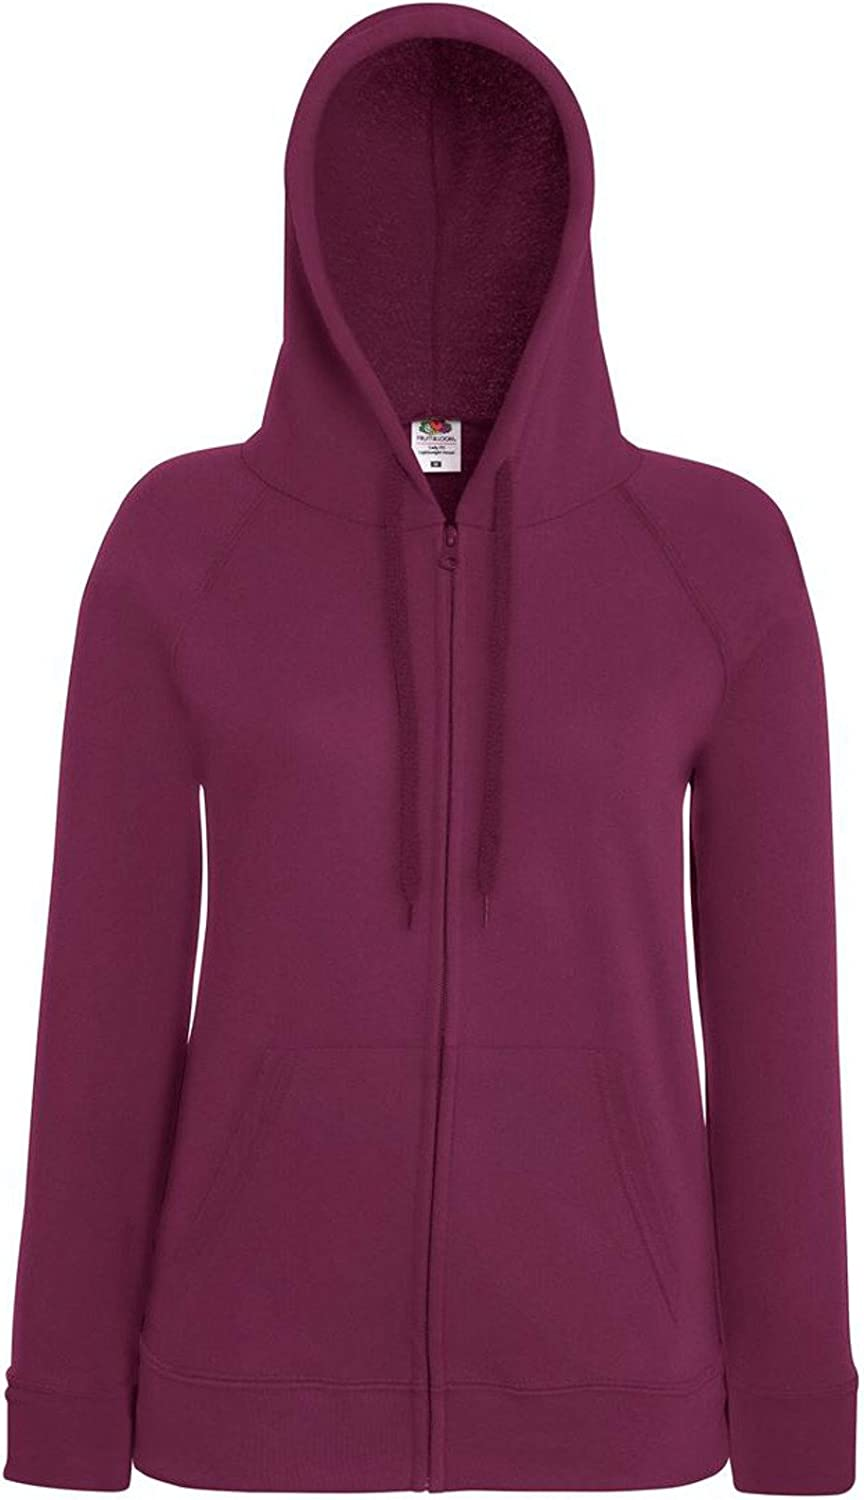 LADY-FIT lightweight HOODED SWEAT JACKETFruit of The Loom